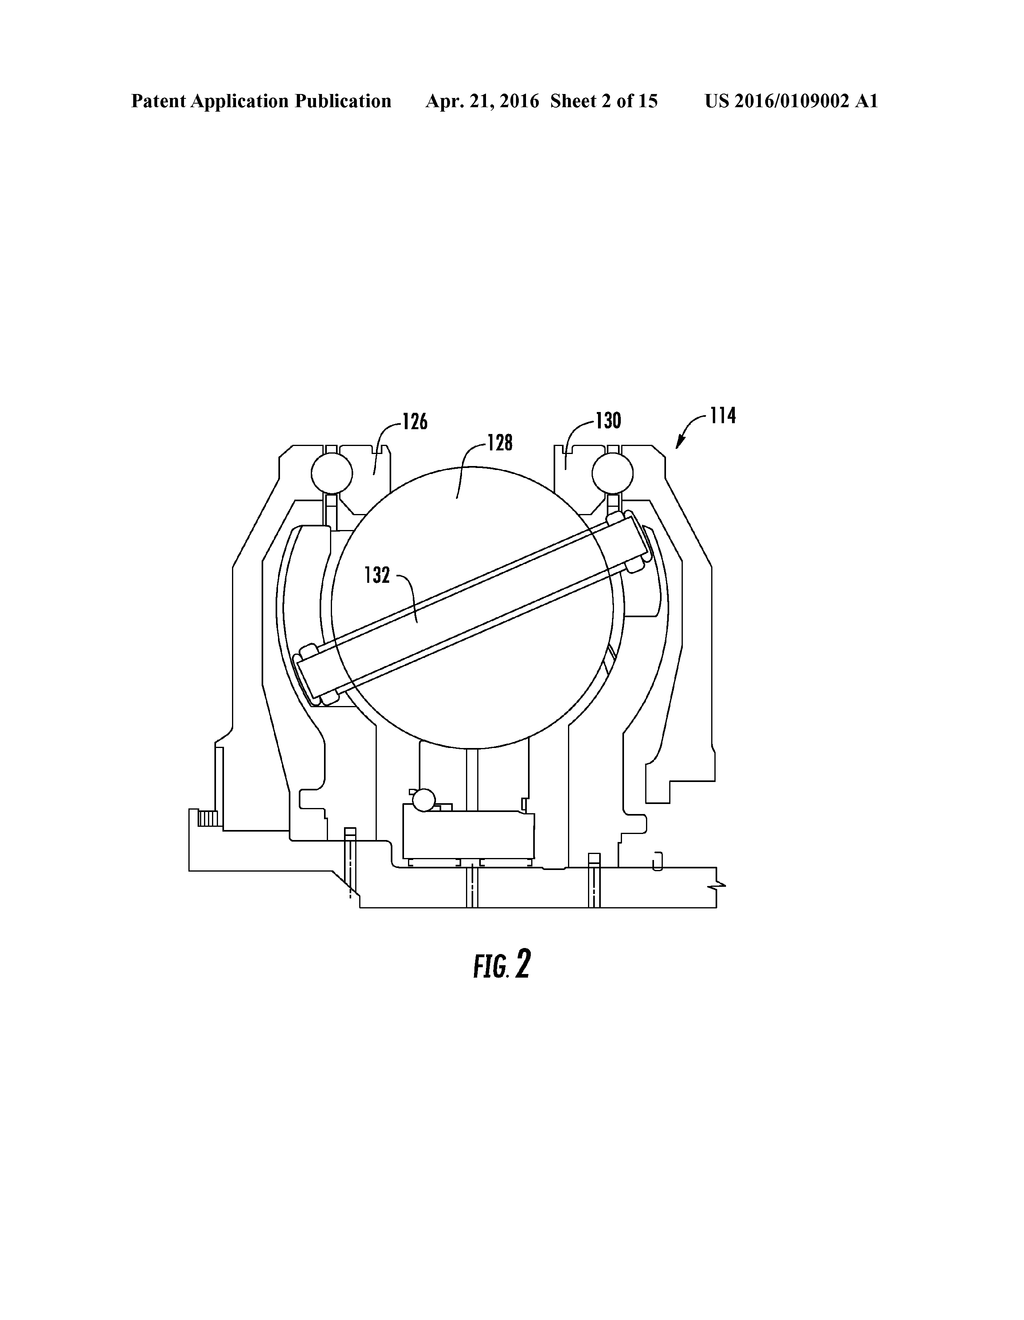 hight resolution of split power infinitely variable transmission architecture incorporating a planetary type ball variator with low part count diagram schematic and image